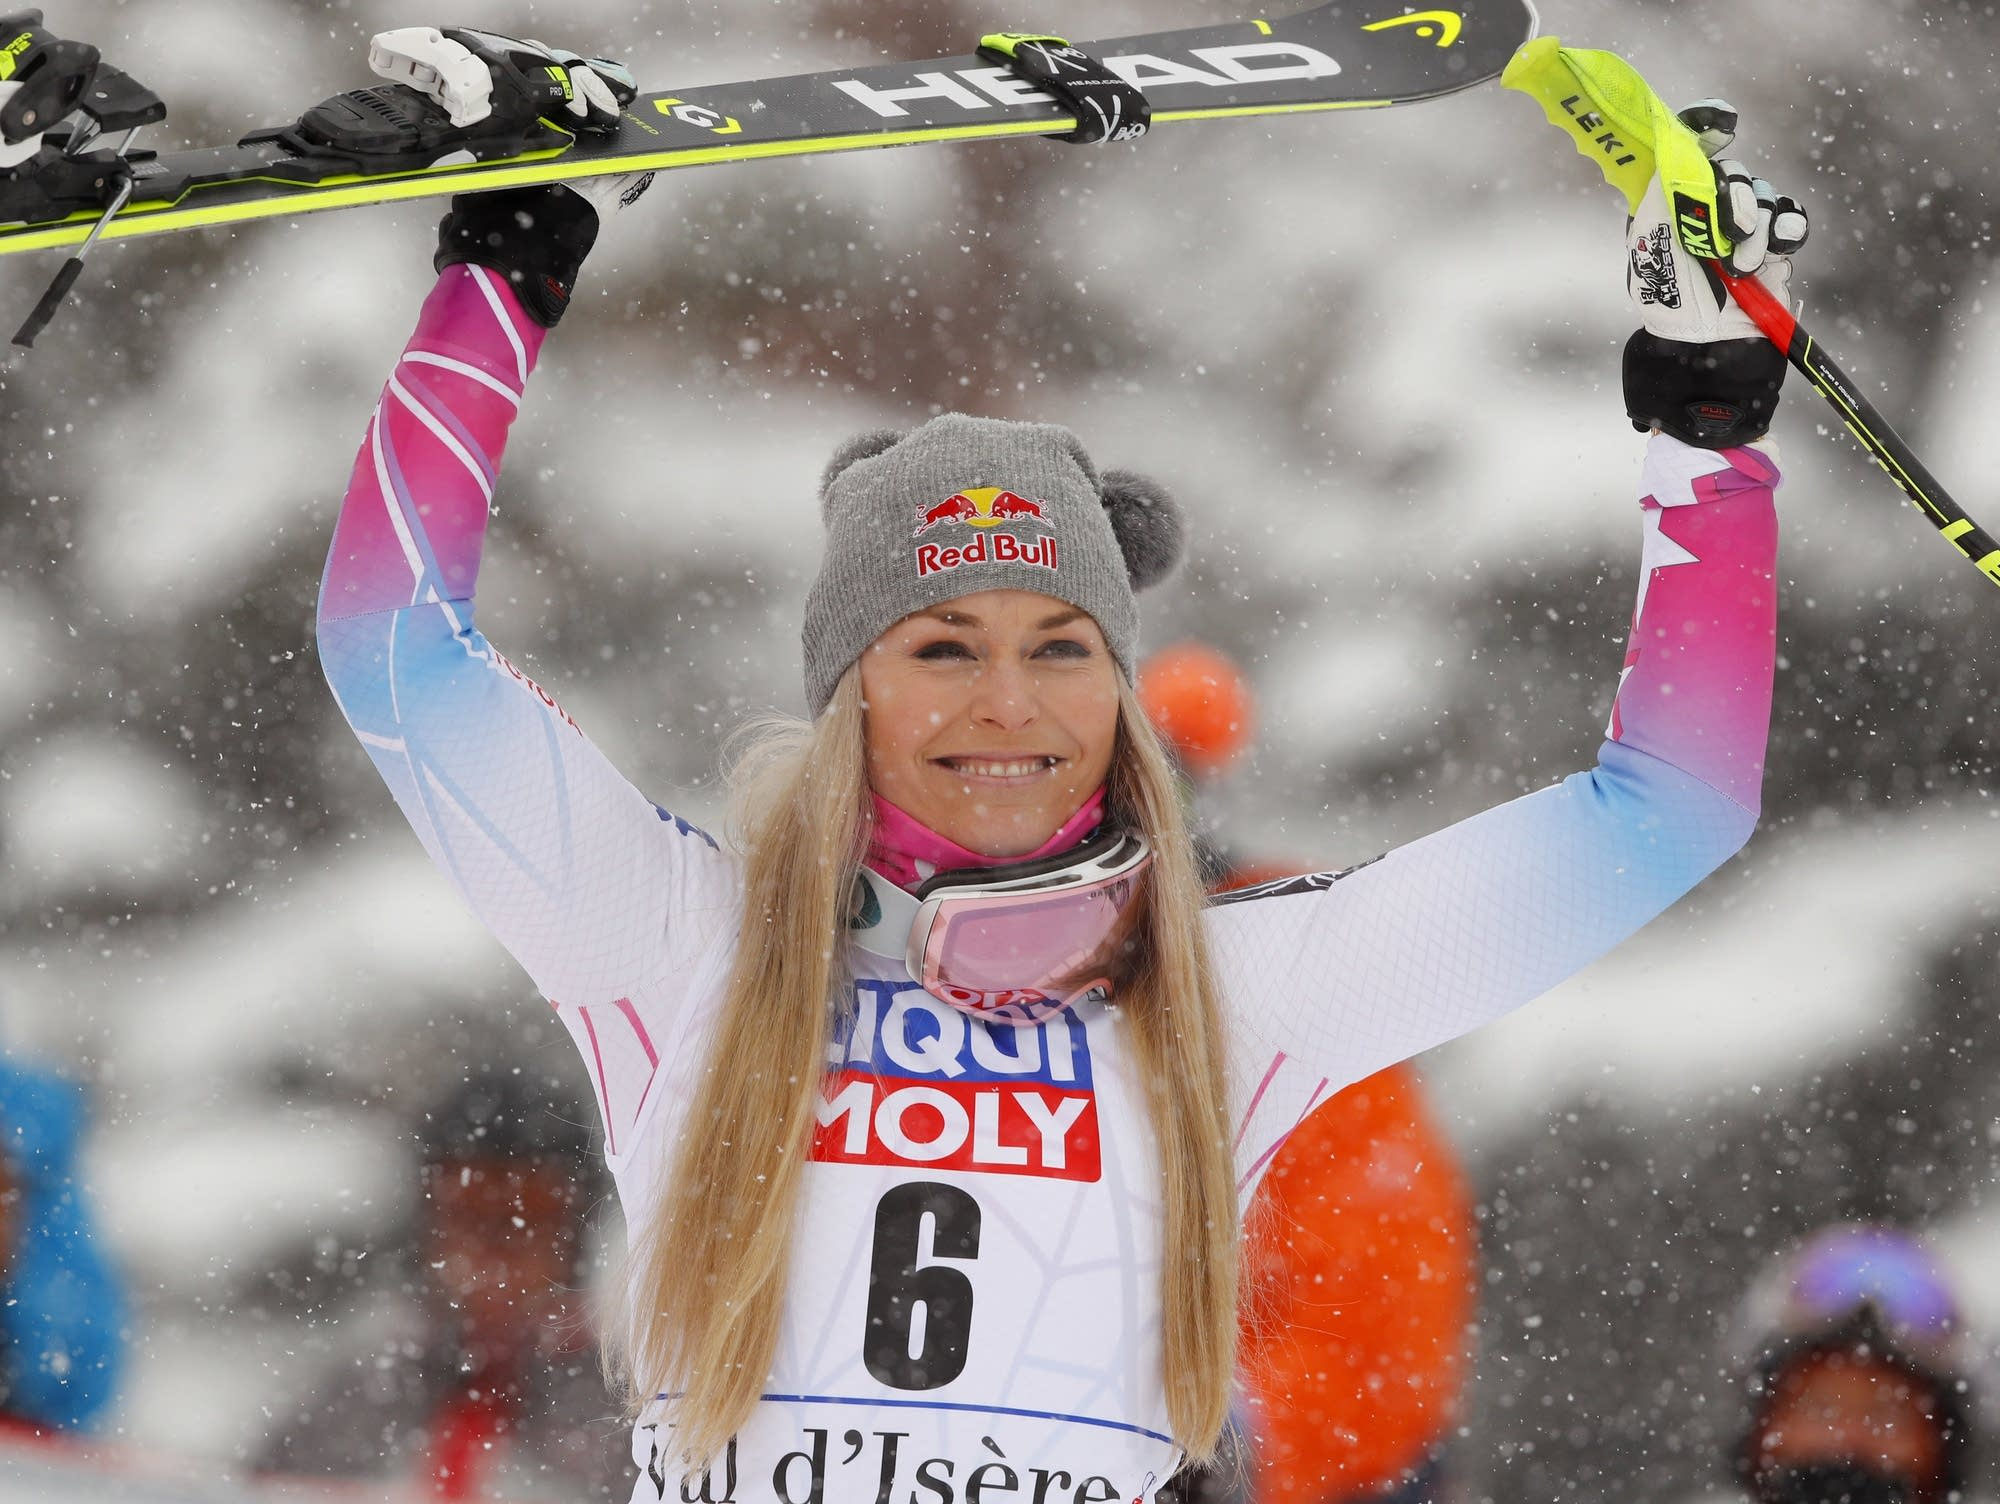 Lindsey Vonn takes WCup super-G race, 1st win of season